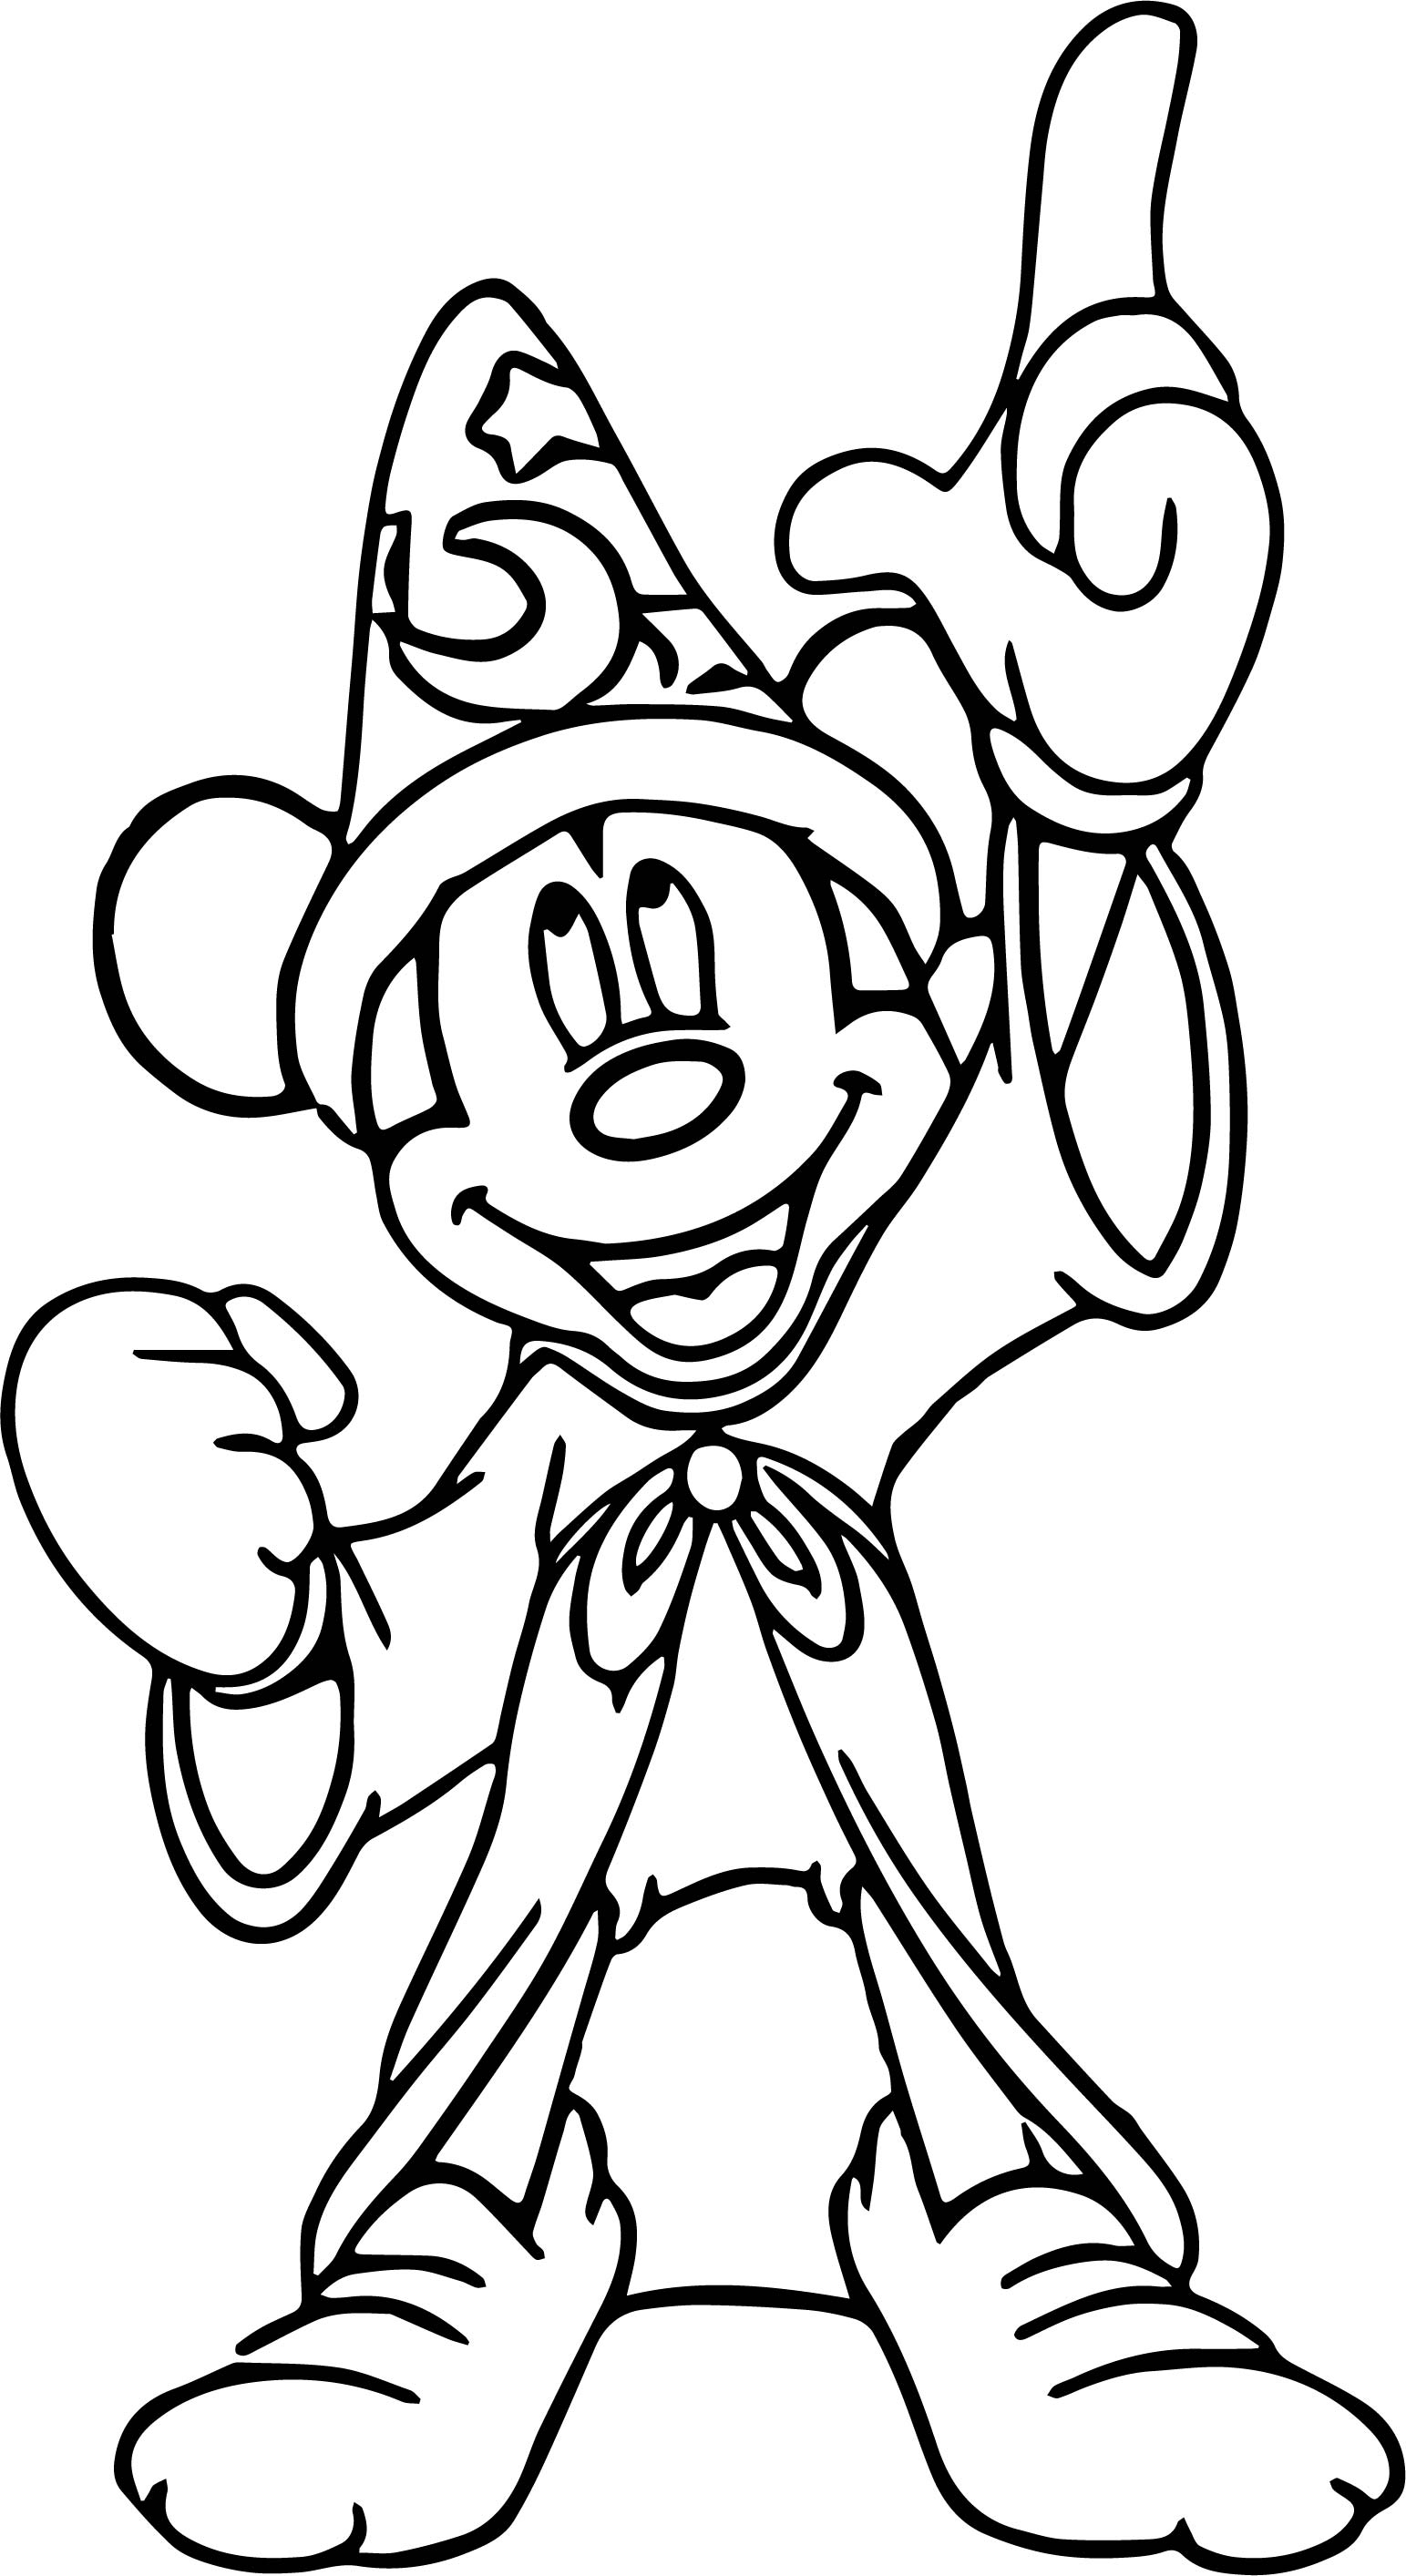 Mickey Fantasia Coloring Pages